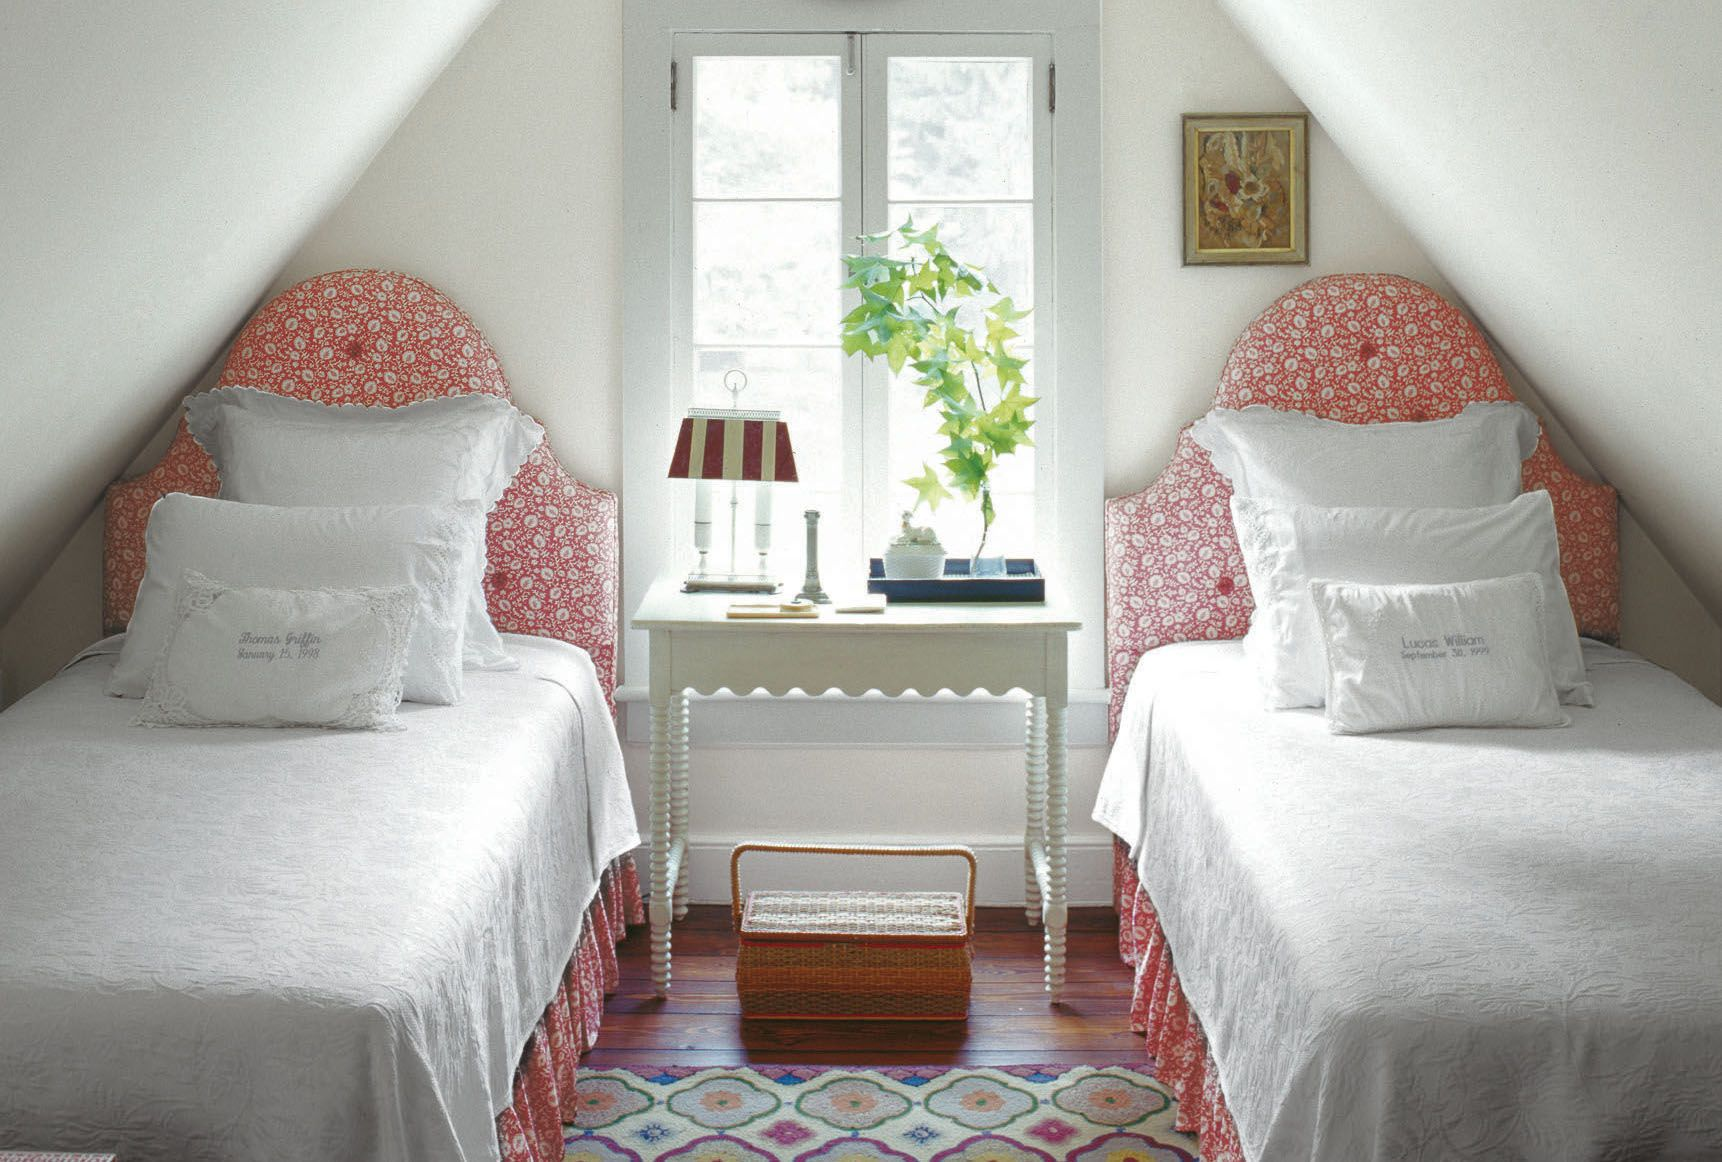 tiny bedrooms.  31 Small Bedroom Design Ideas Decorating Tips for Bedrooms